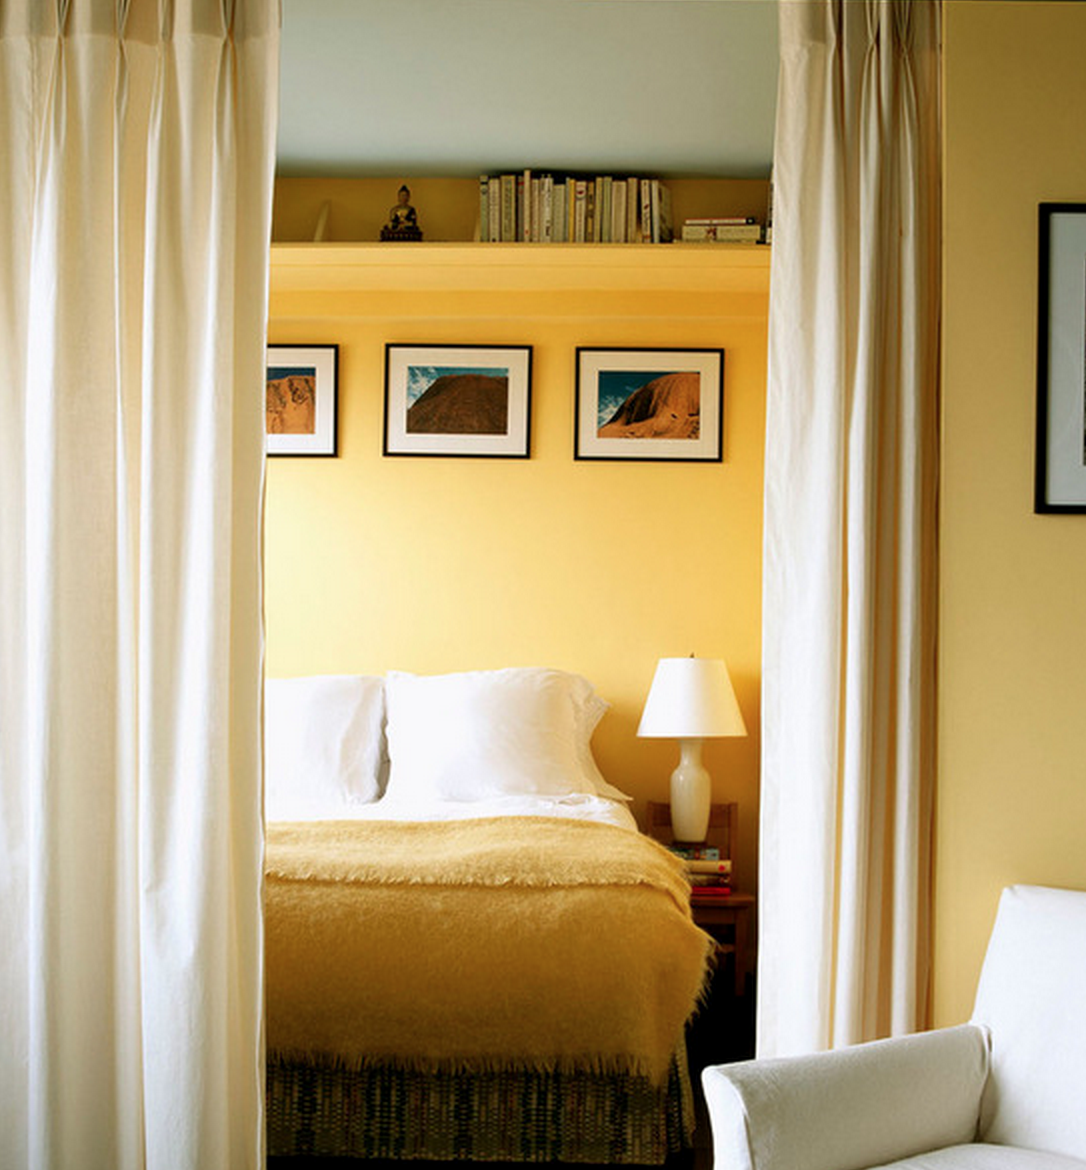 Bookshelf over bed; curtains around bed | Home - Bedroom | Pinterest ...